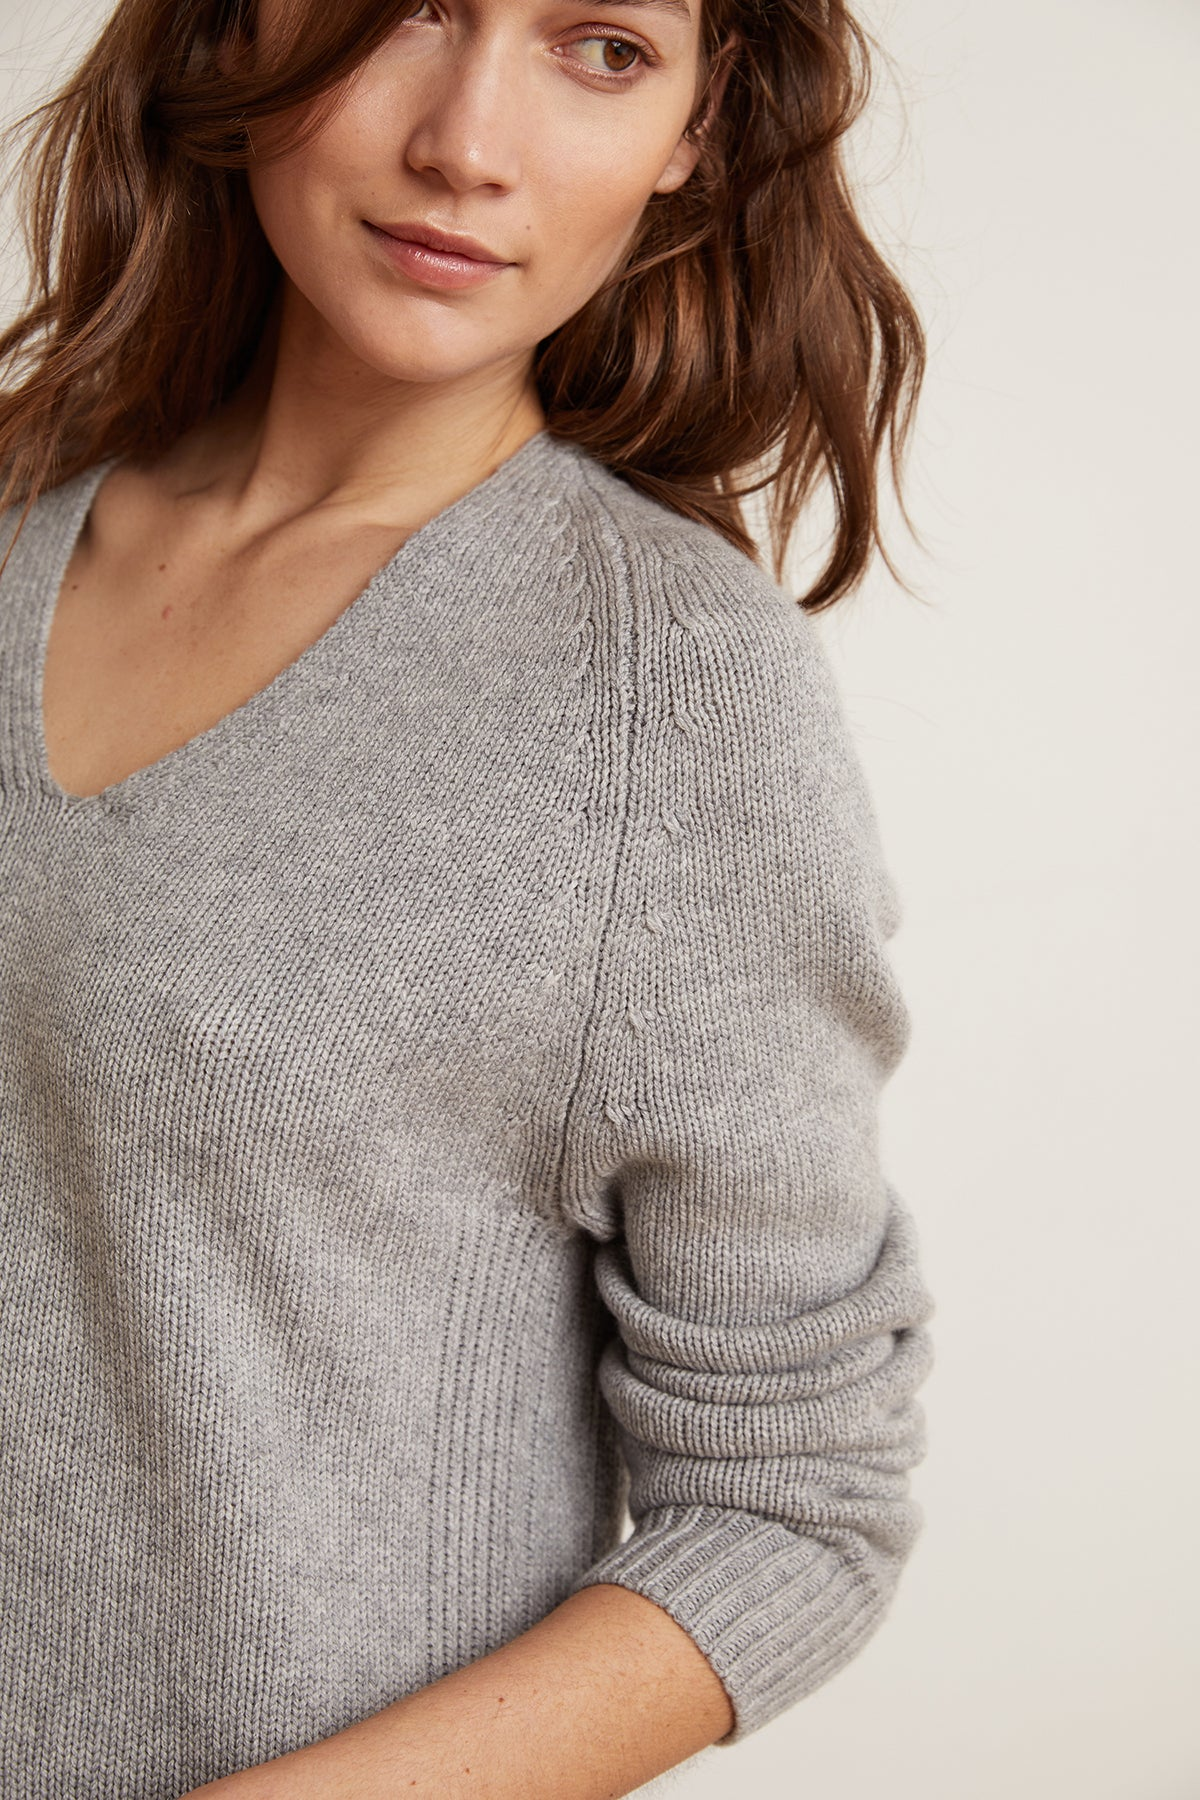 SOFIE LUX CASHMERE BLEND V-NECK SWEATER